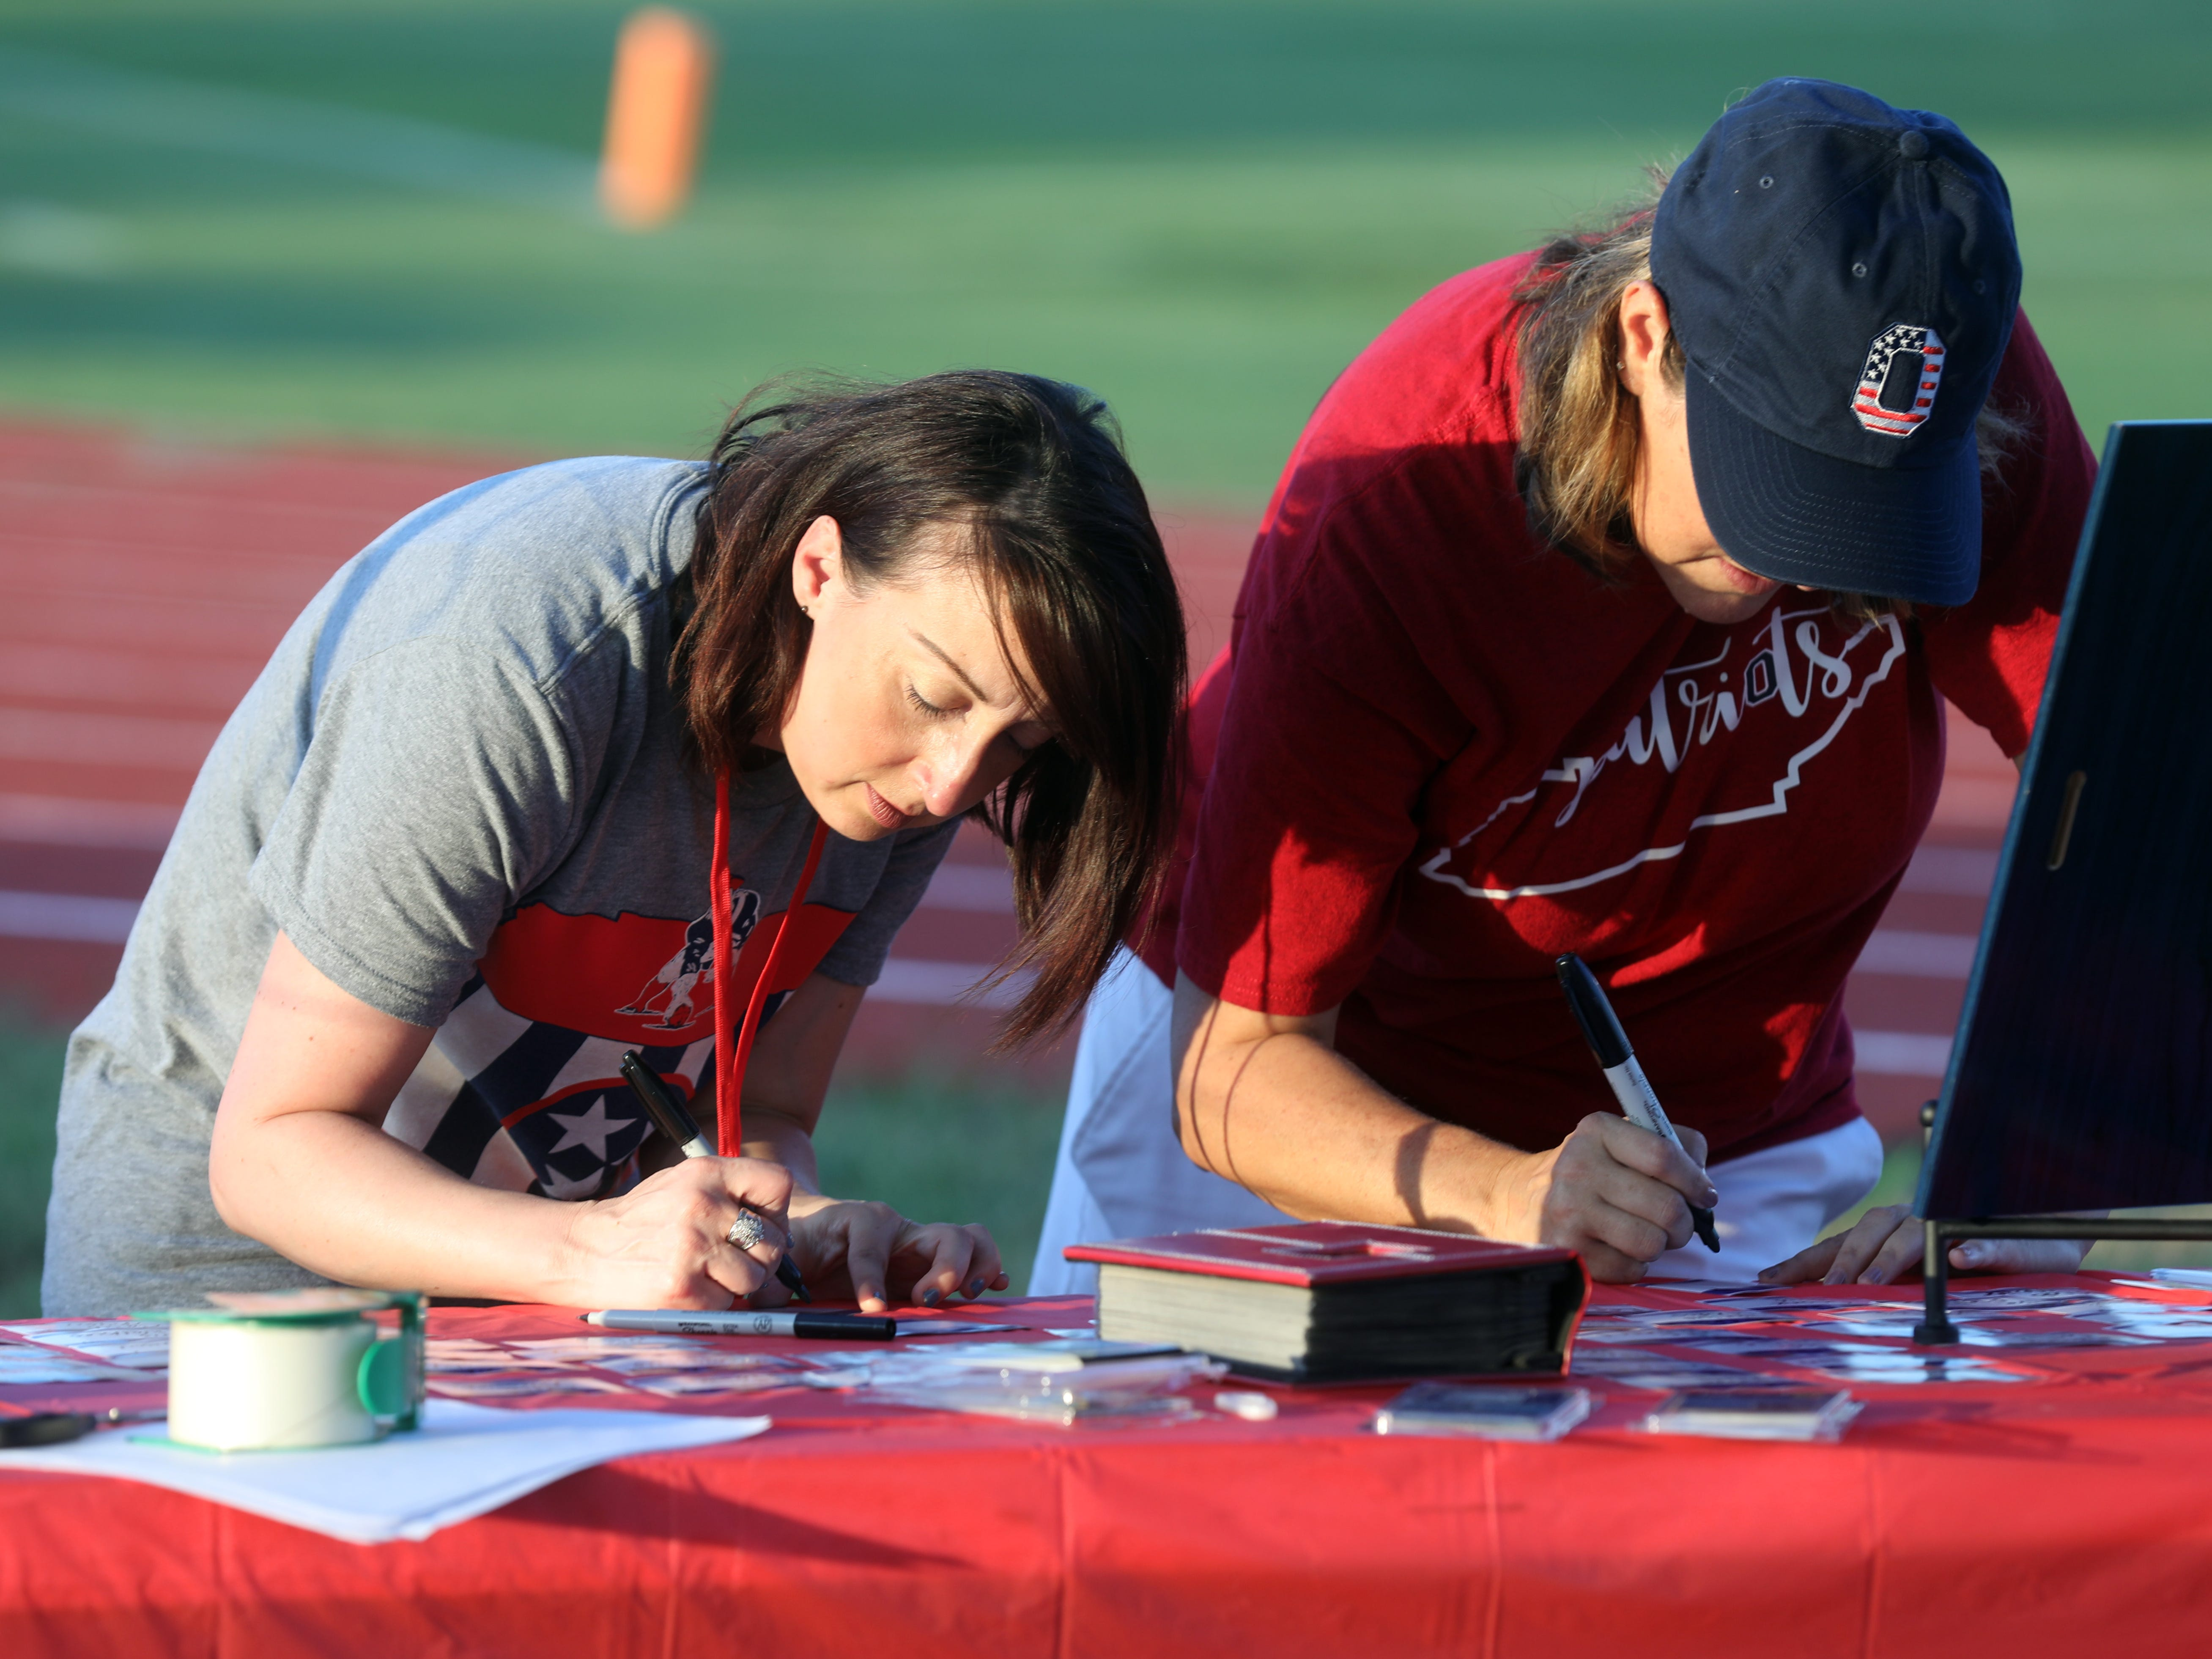 Jamie Moorehead, left, and Pam Curray, right, fill out name tags for the 2008 Oakland High School football team who are to honored during the game at Oakland High School in Murfreesboro Friday, October 5, 2018.